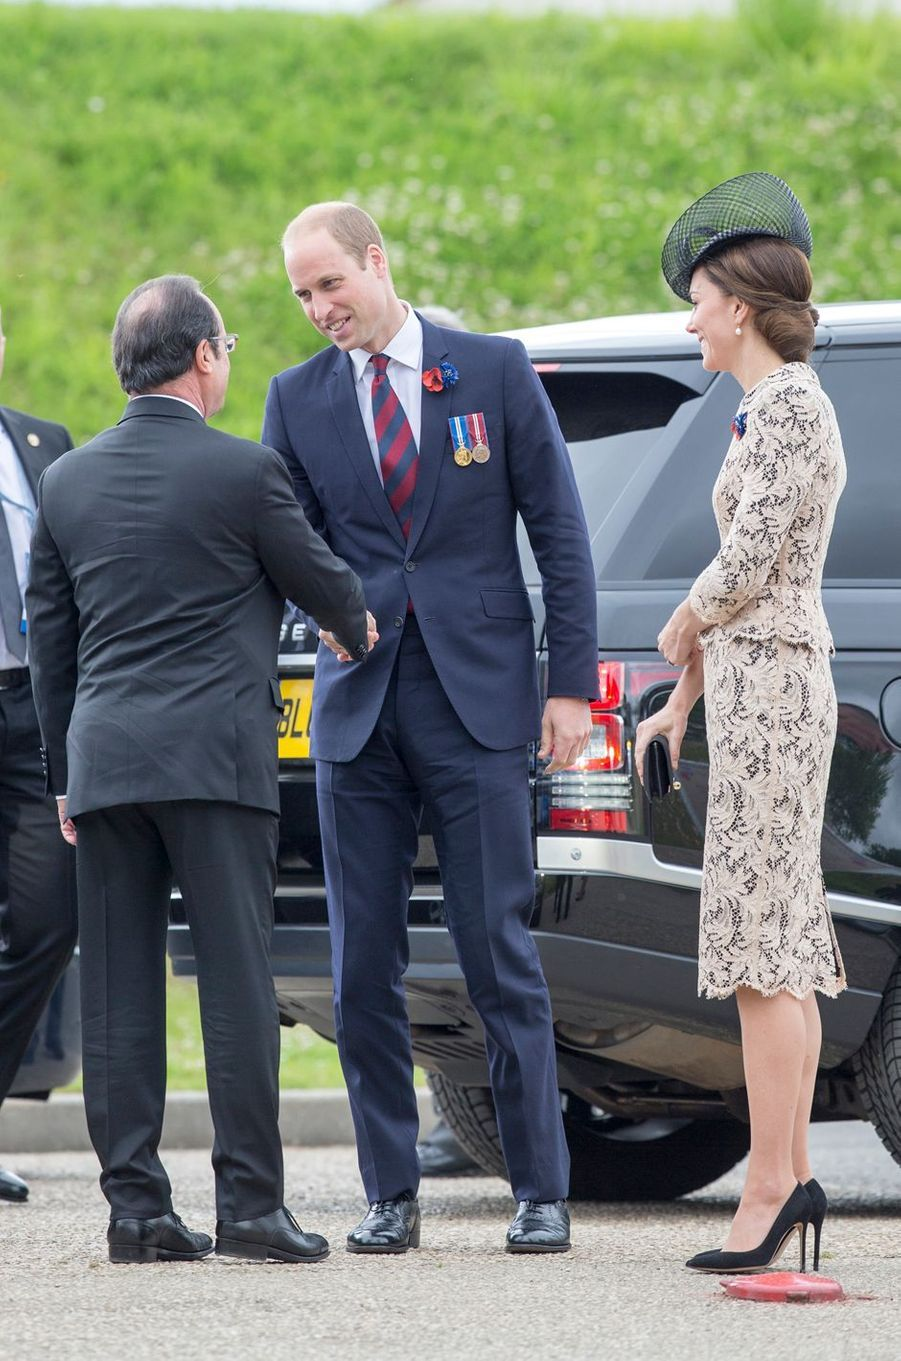 Le prince William et la duchesse Catherine de Cambridge avec François Hollande à Thiepval, le 1er juillet 2016